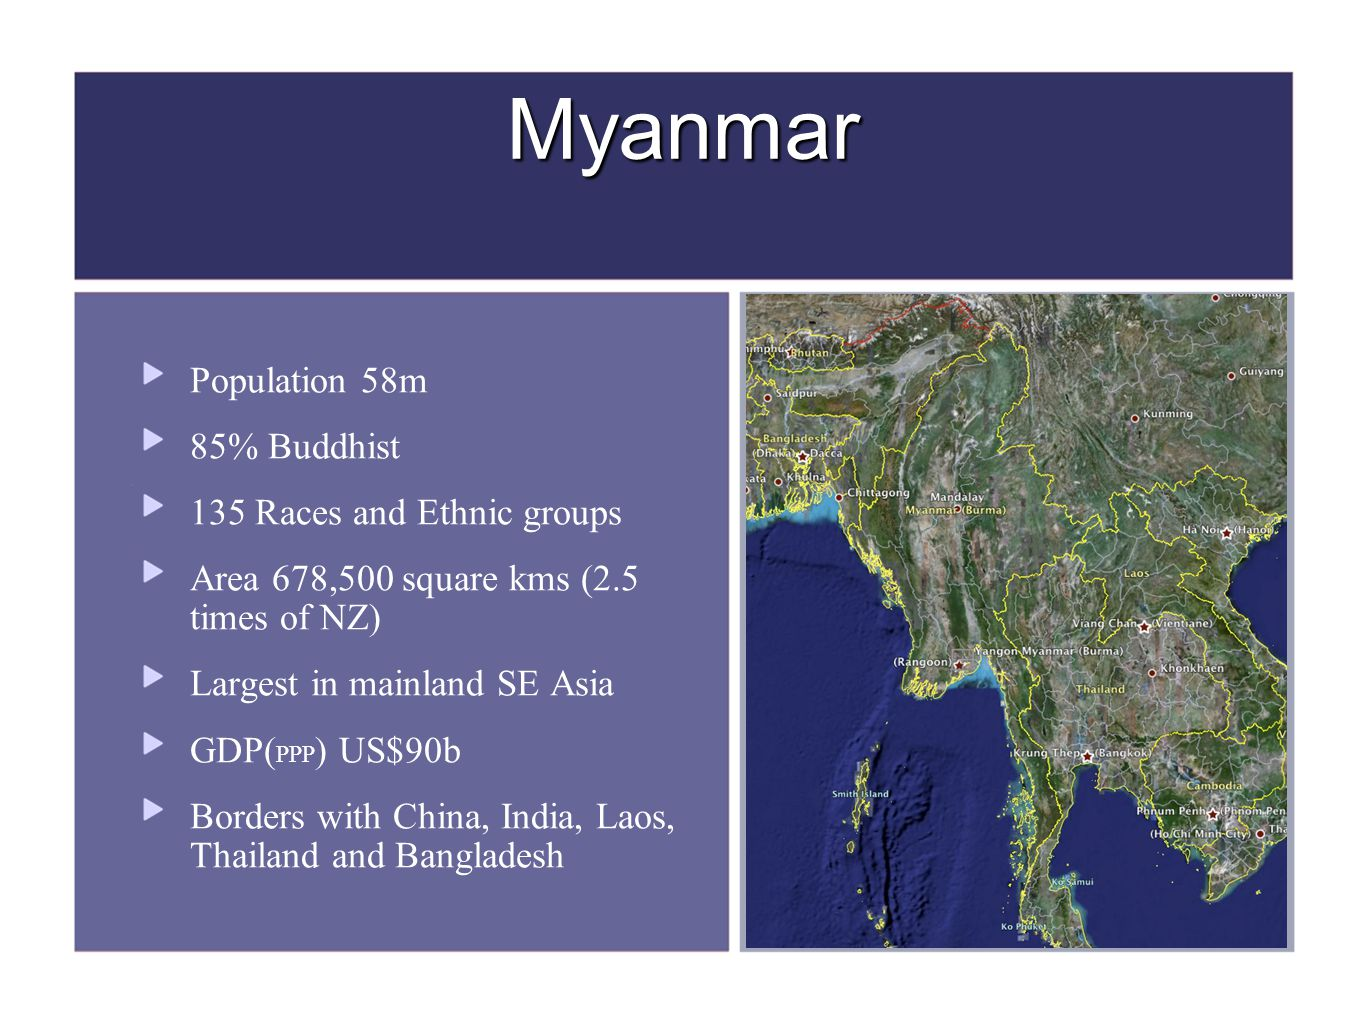 Myanmar Population 58m 85% Buddhist 135 Races and Ethnic groups Area 678,500 square kms (2.5 times of NZ) Largest in mainland SE Asia GDP( PPP ) US$90